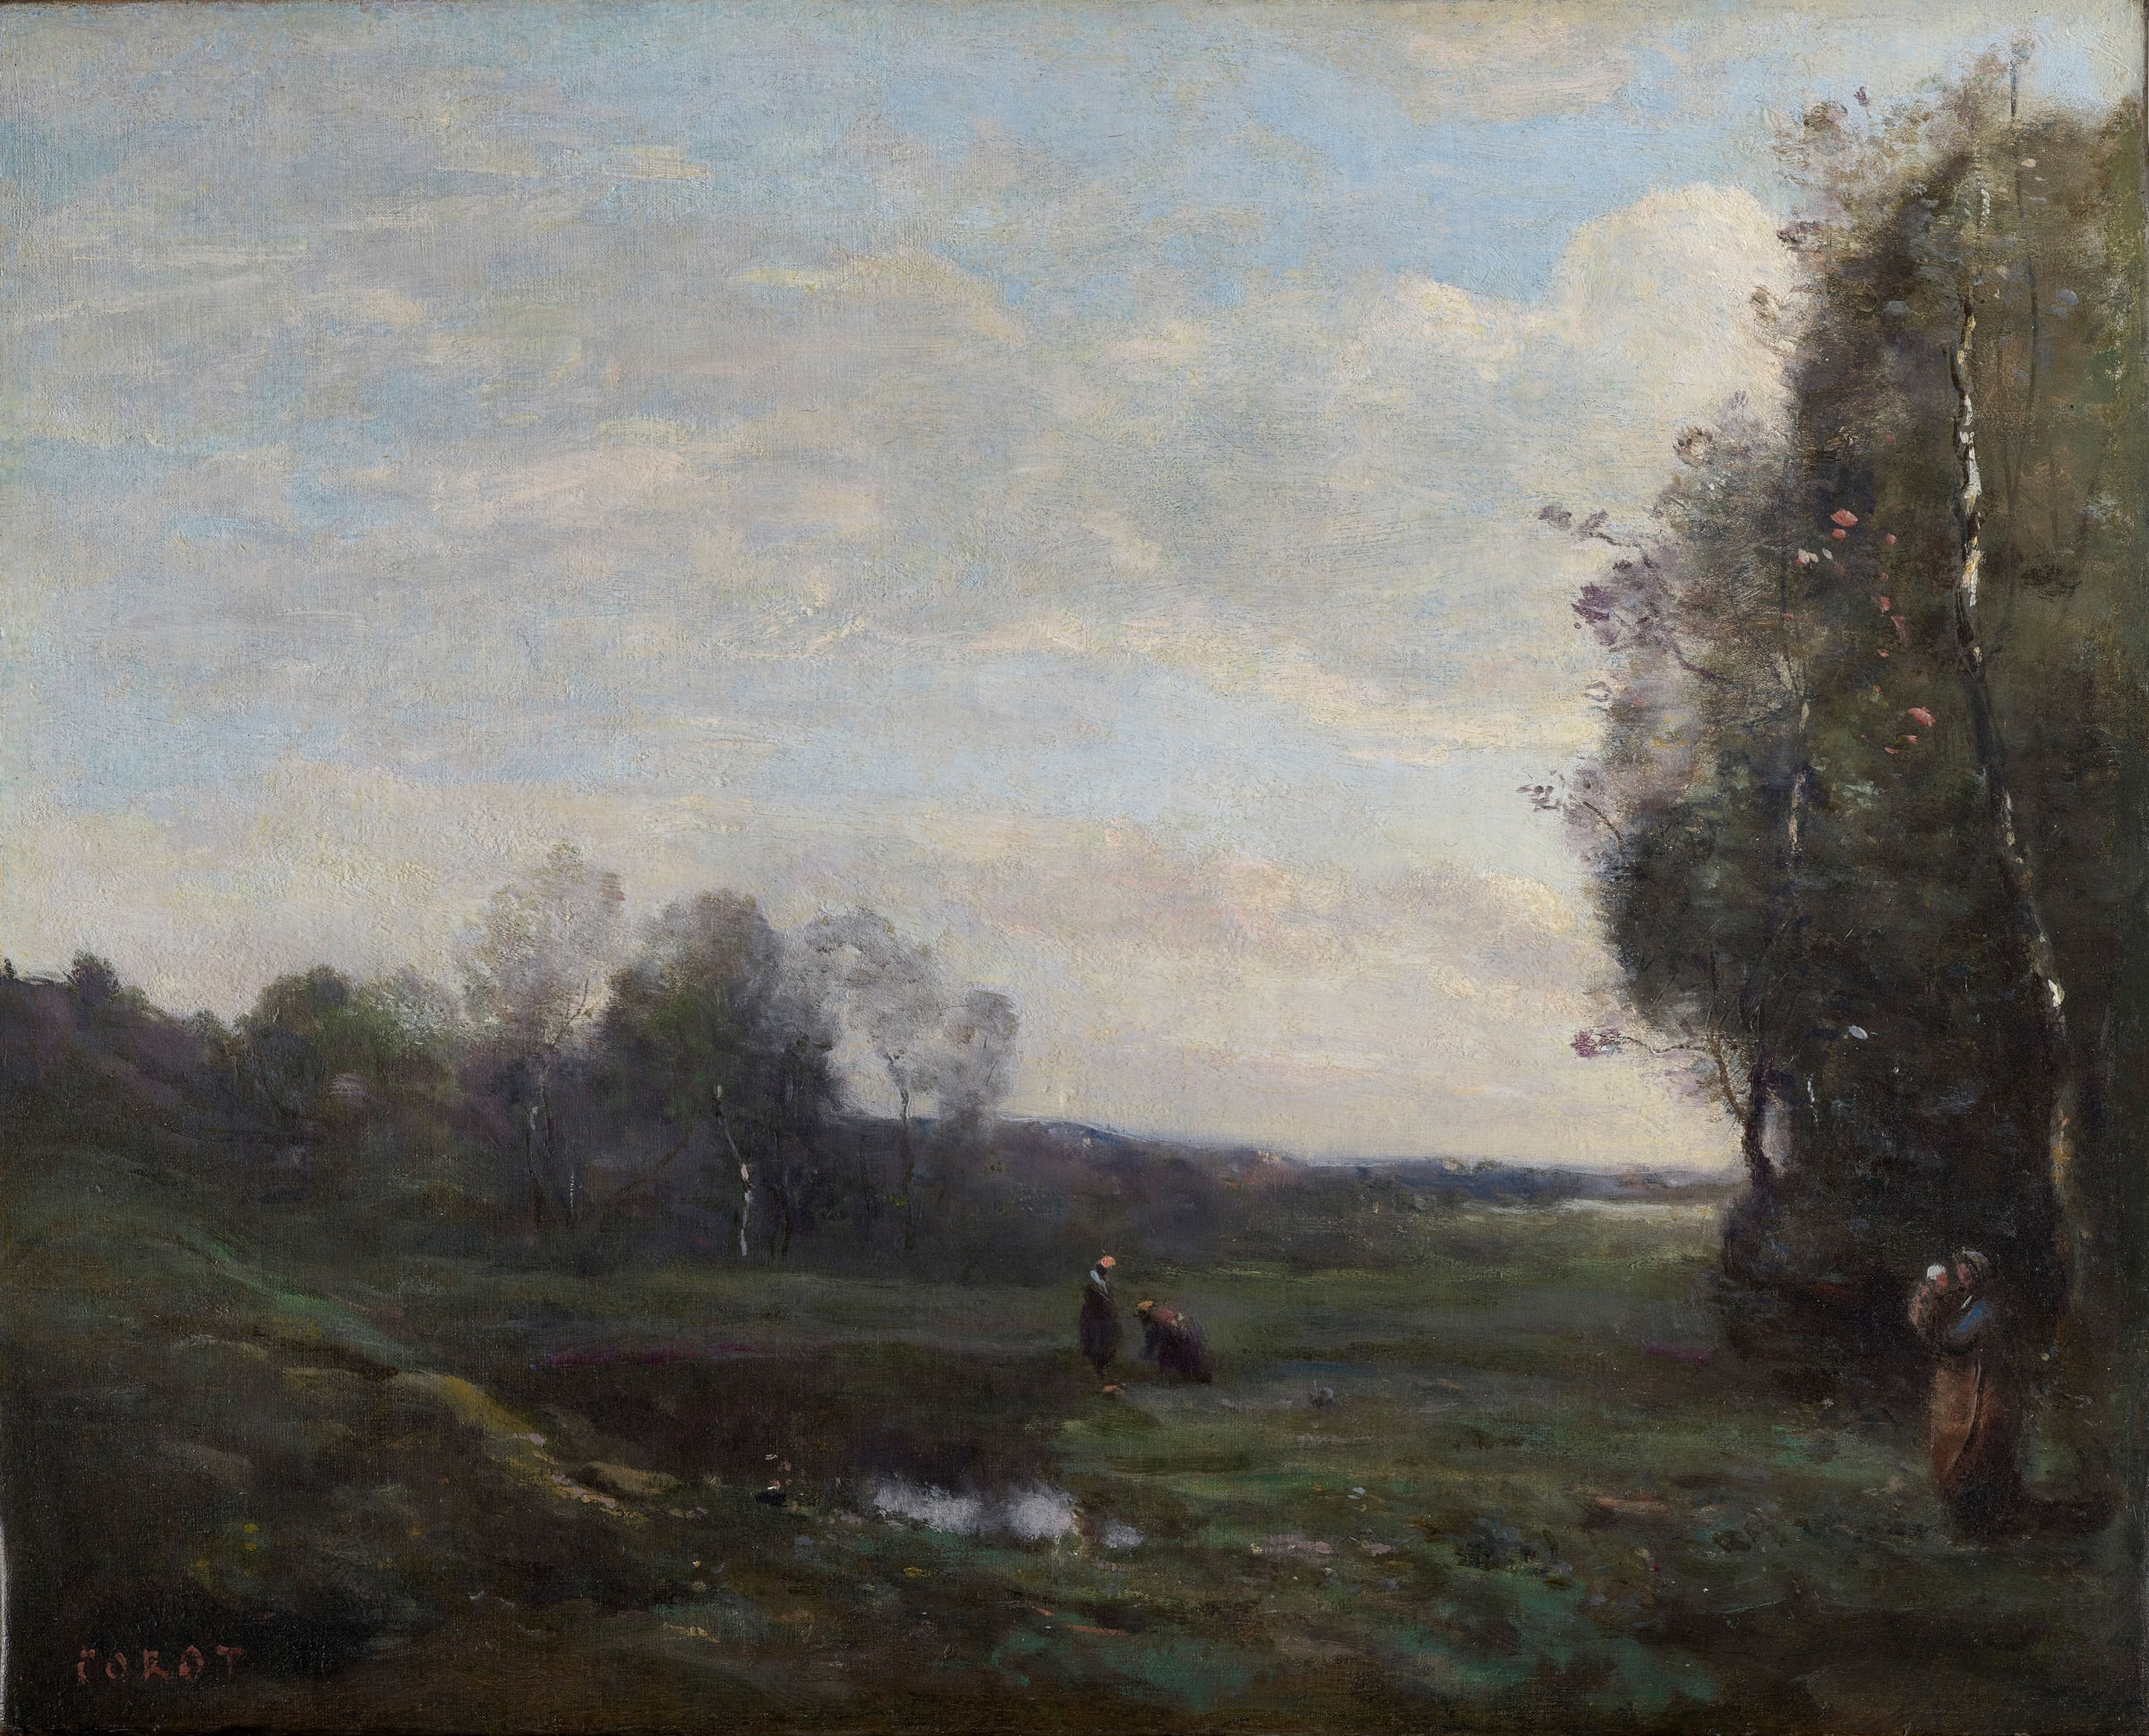 """<span class=""""link fancybox-details-link""""><a href=""""/viewing-room/2/works/artworks_standalone9471/"""">View Detail Page</a></span><div class=""""signed_and_dated"""">Signed 'COROT' lower left</div><div class=""""medium"""">Oil on canvas</div><div class=""""dimensions"""">37.7 x 46.4 cm<br /> 14 13/16 x 18 1/4 inches</div>"""